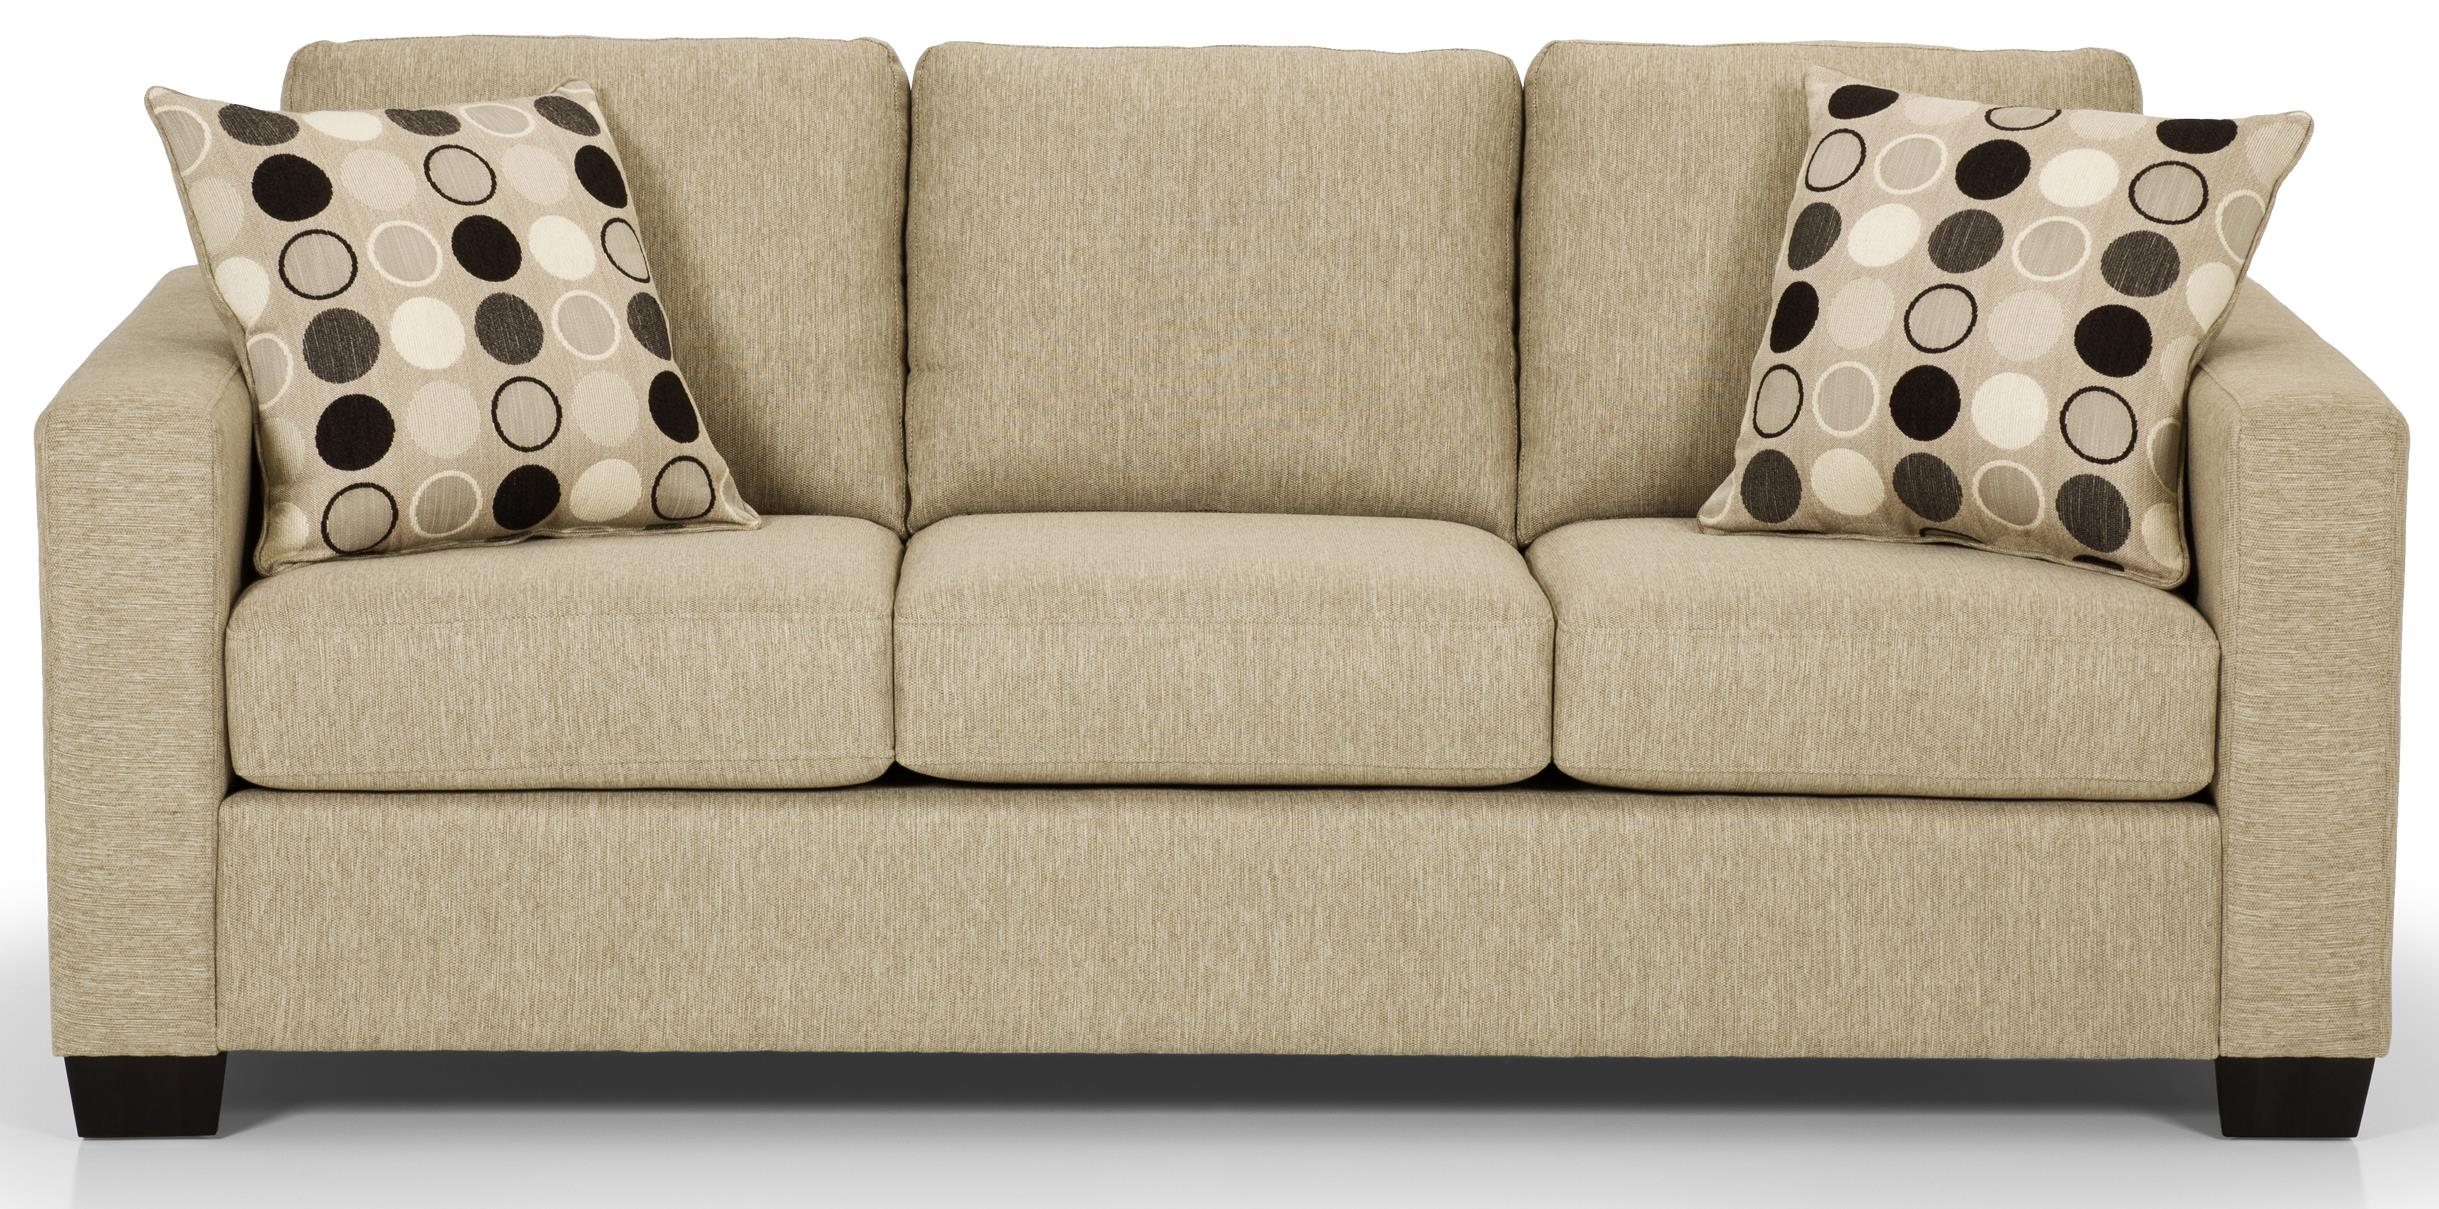 702 Sofa by Stanton at Wilson's Furniture